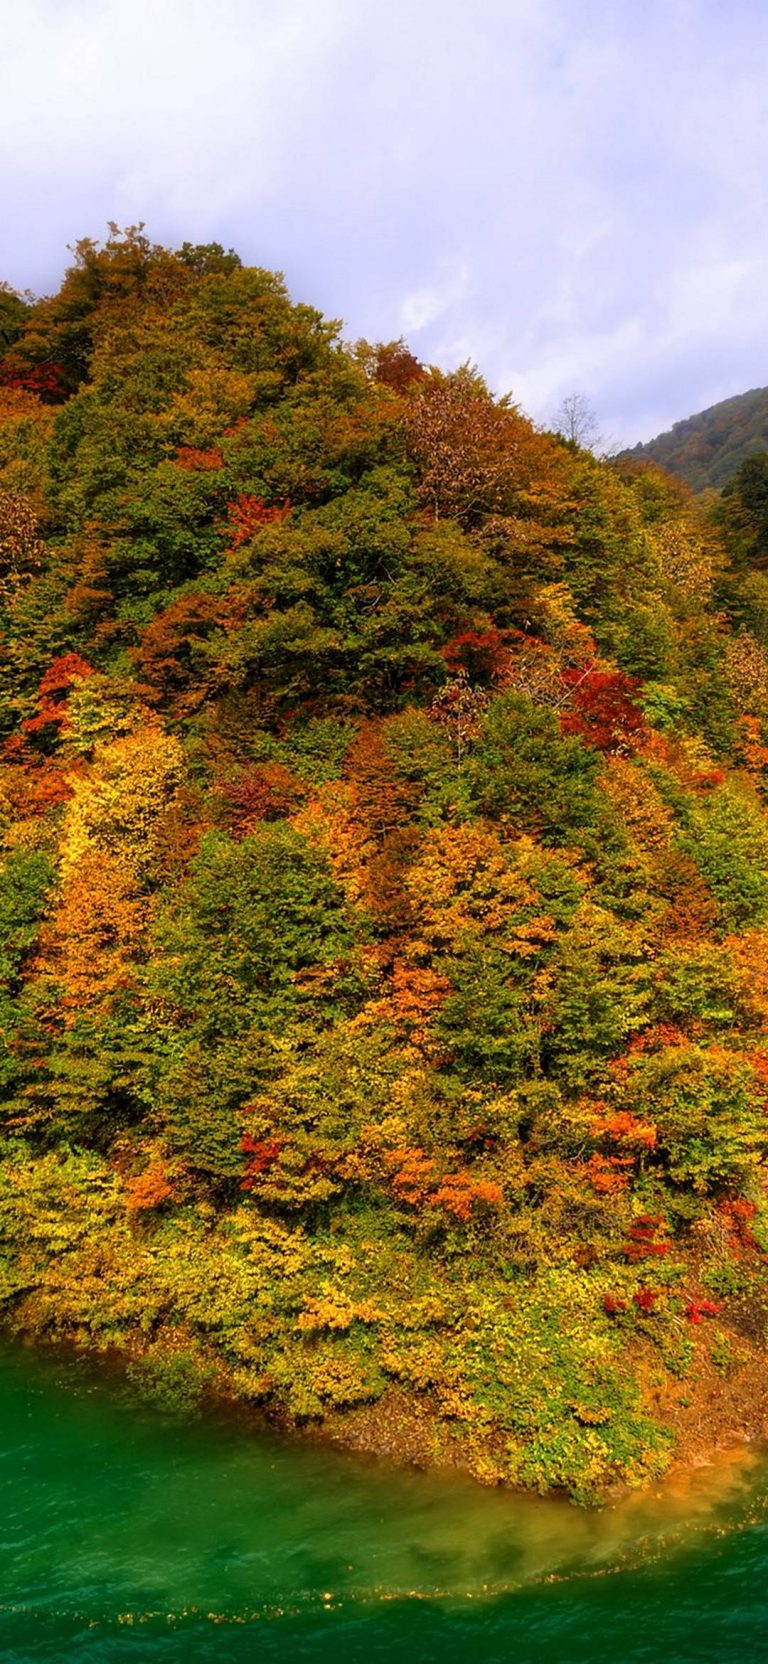 Mountains-Japan-Fall-Forest-Lake-Autumn-1080x2340-768x1664-1 - 51+ BEST Free vivo Z1 Pro Phone Wallpapers [year]